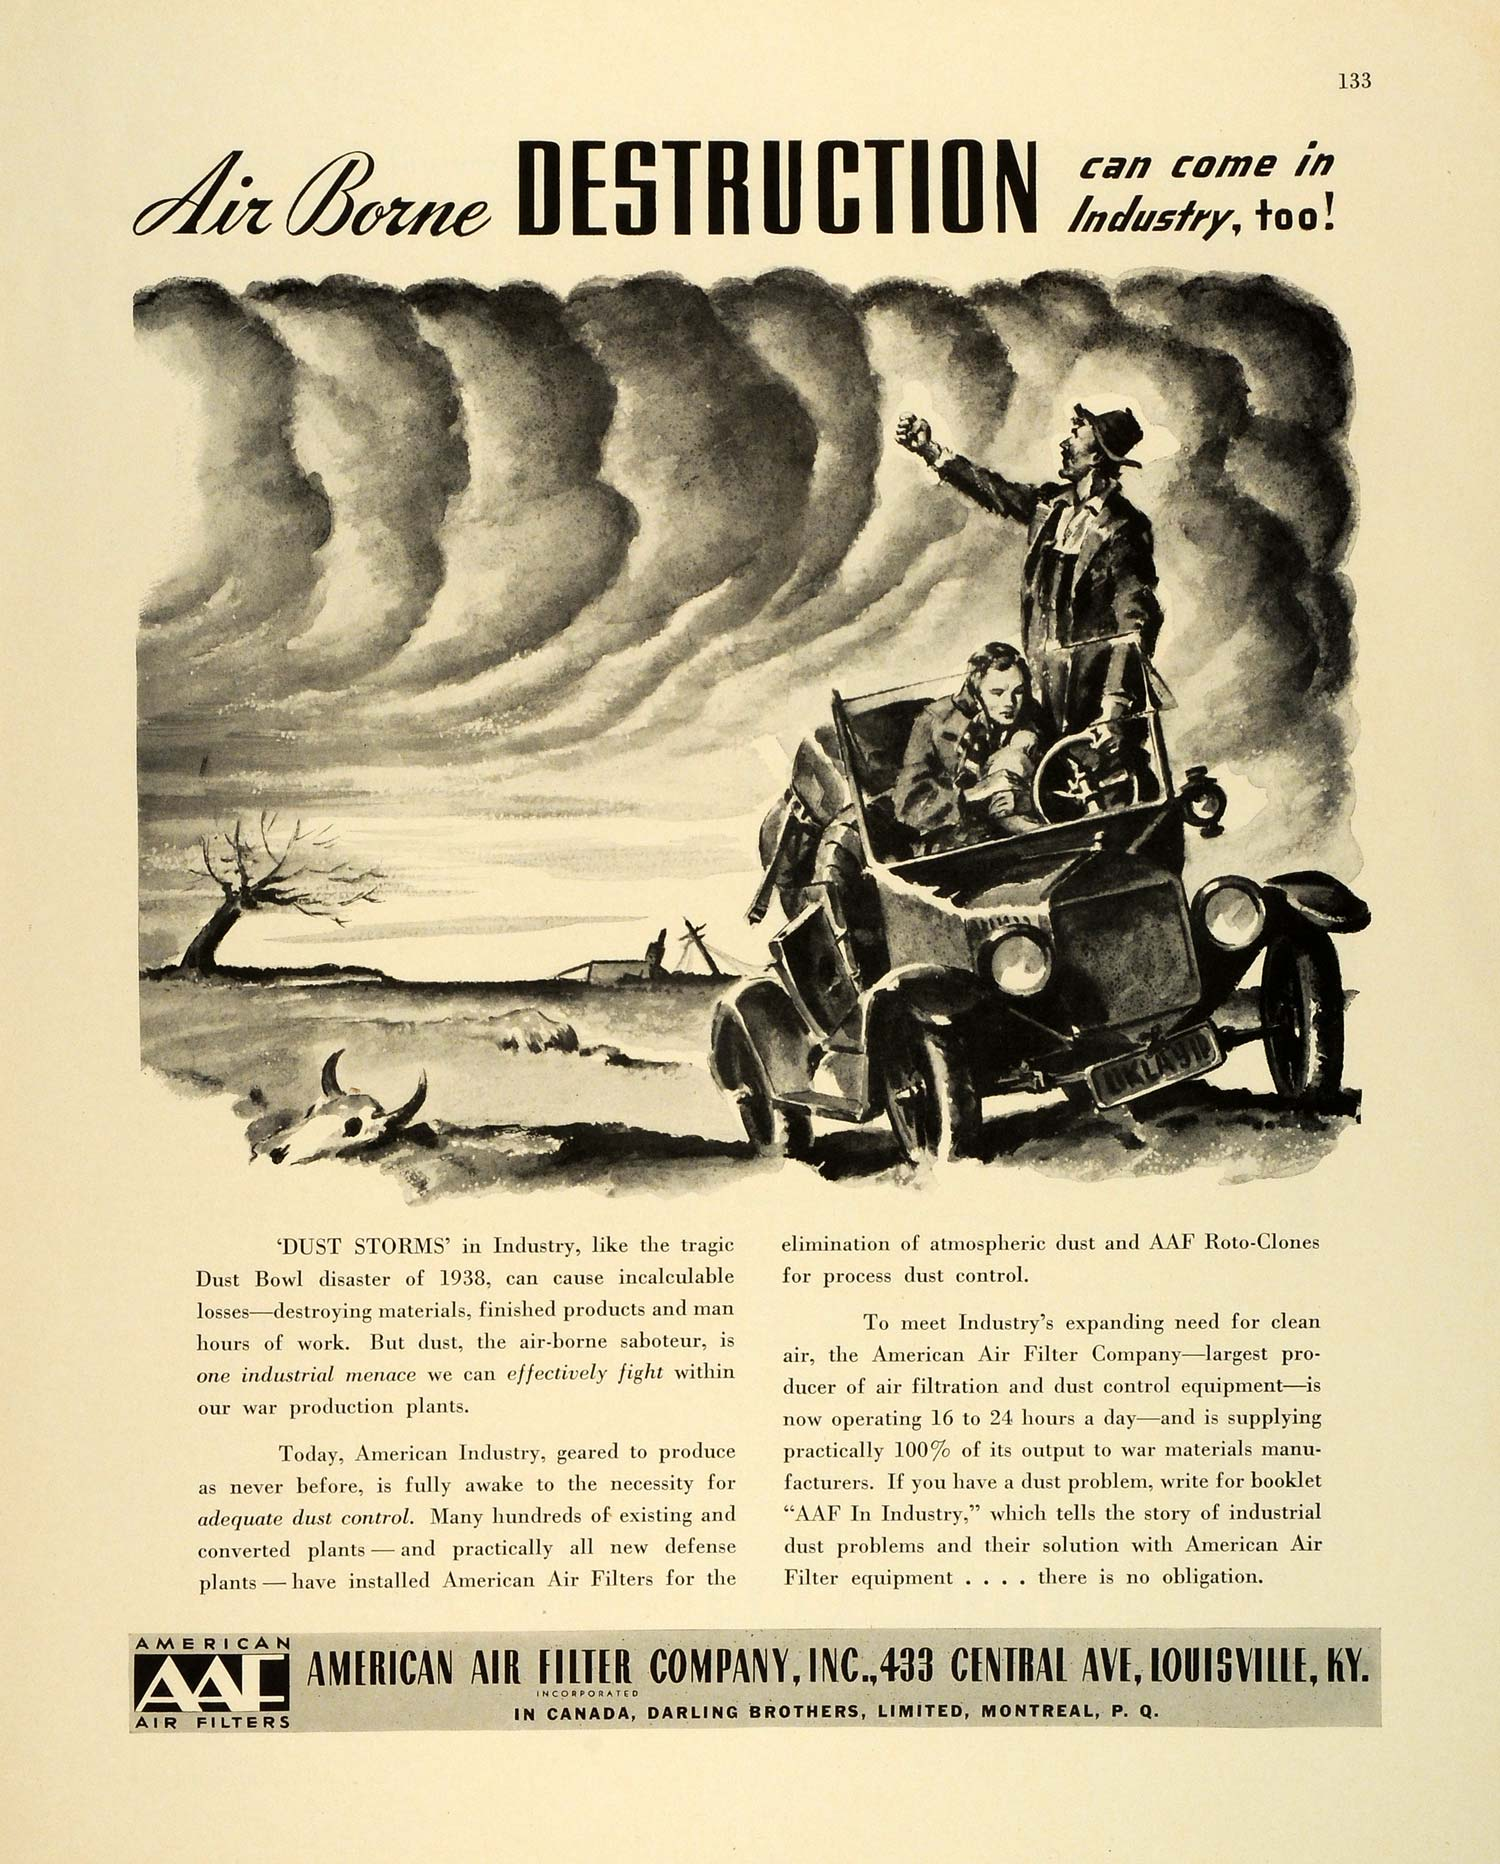 1942 Ad AAF American Air Filter 1938 Dust Bowl WWII War Production Antique FZ6